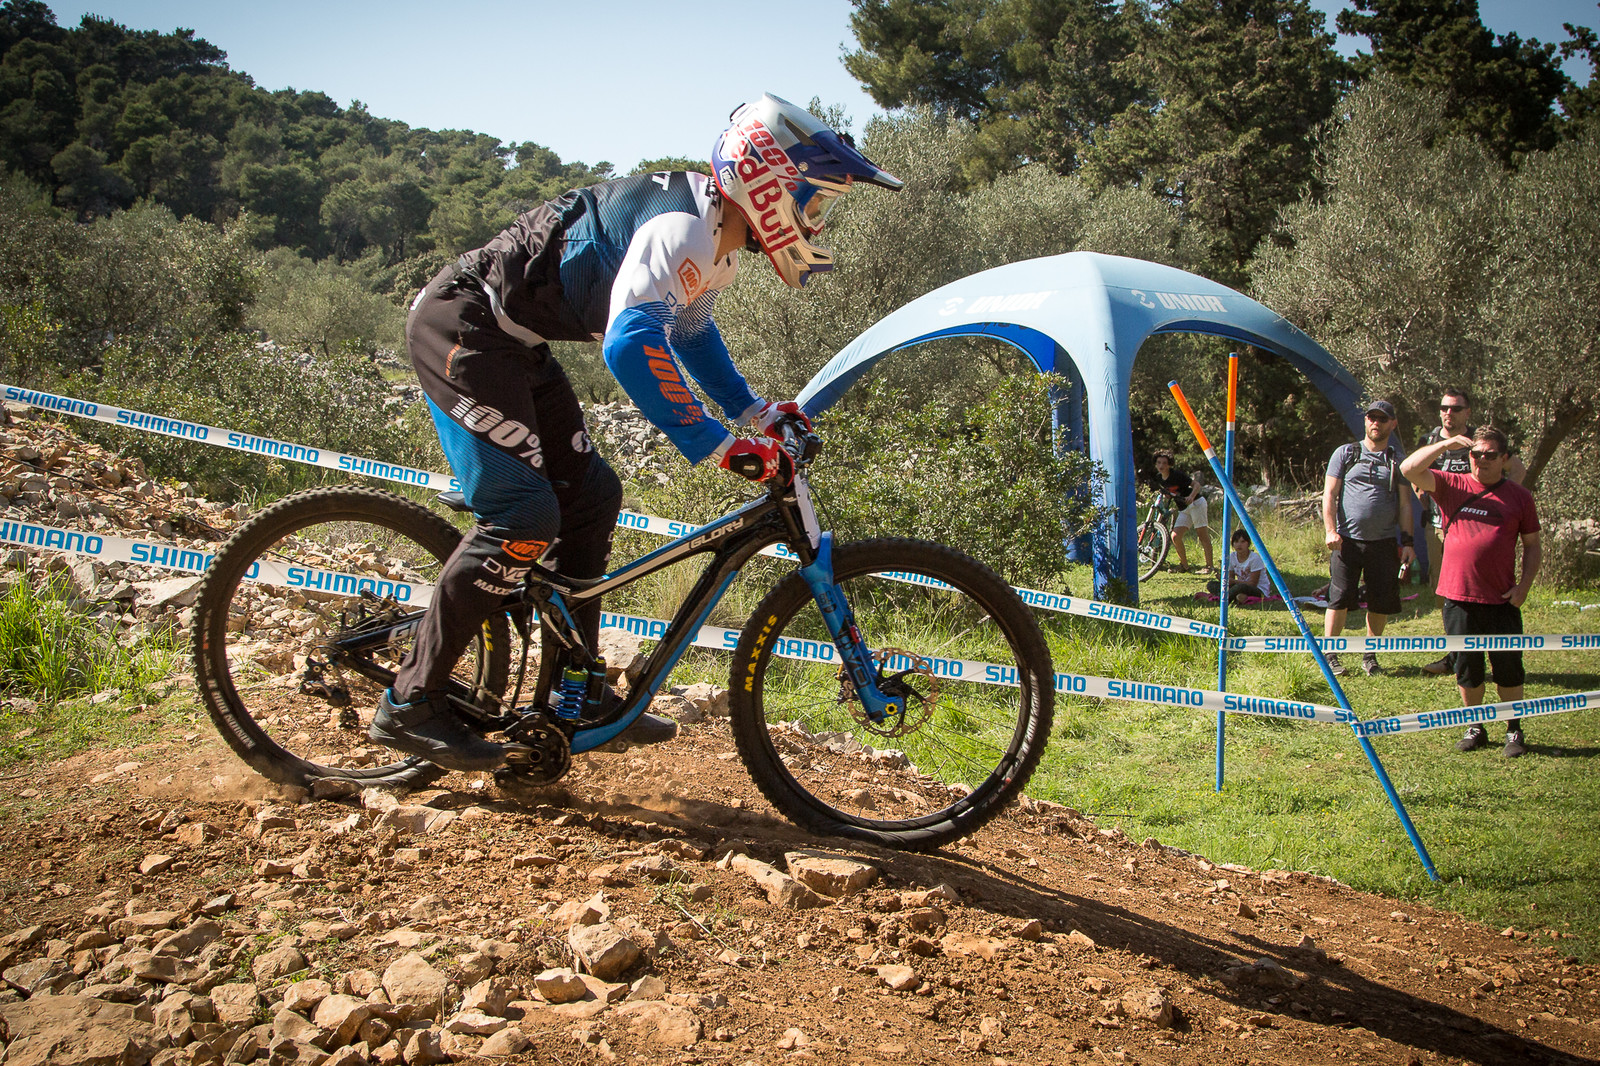 Marcelo Gutierrez's Giant Glory with DVO at Full Squish - G-Out Project - Croatia World Cup DH - Mountain Biking Pictures - Vital MTB